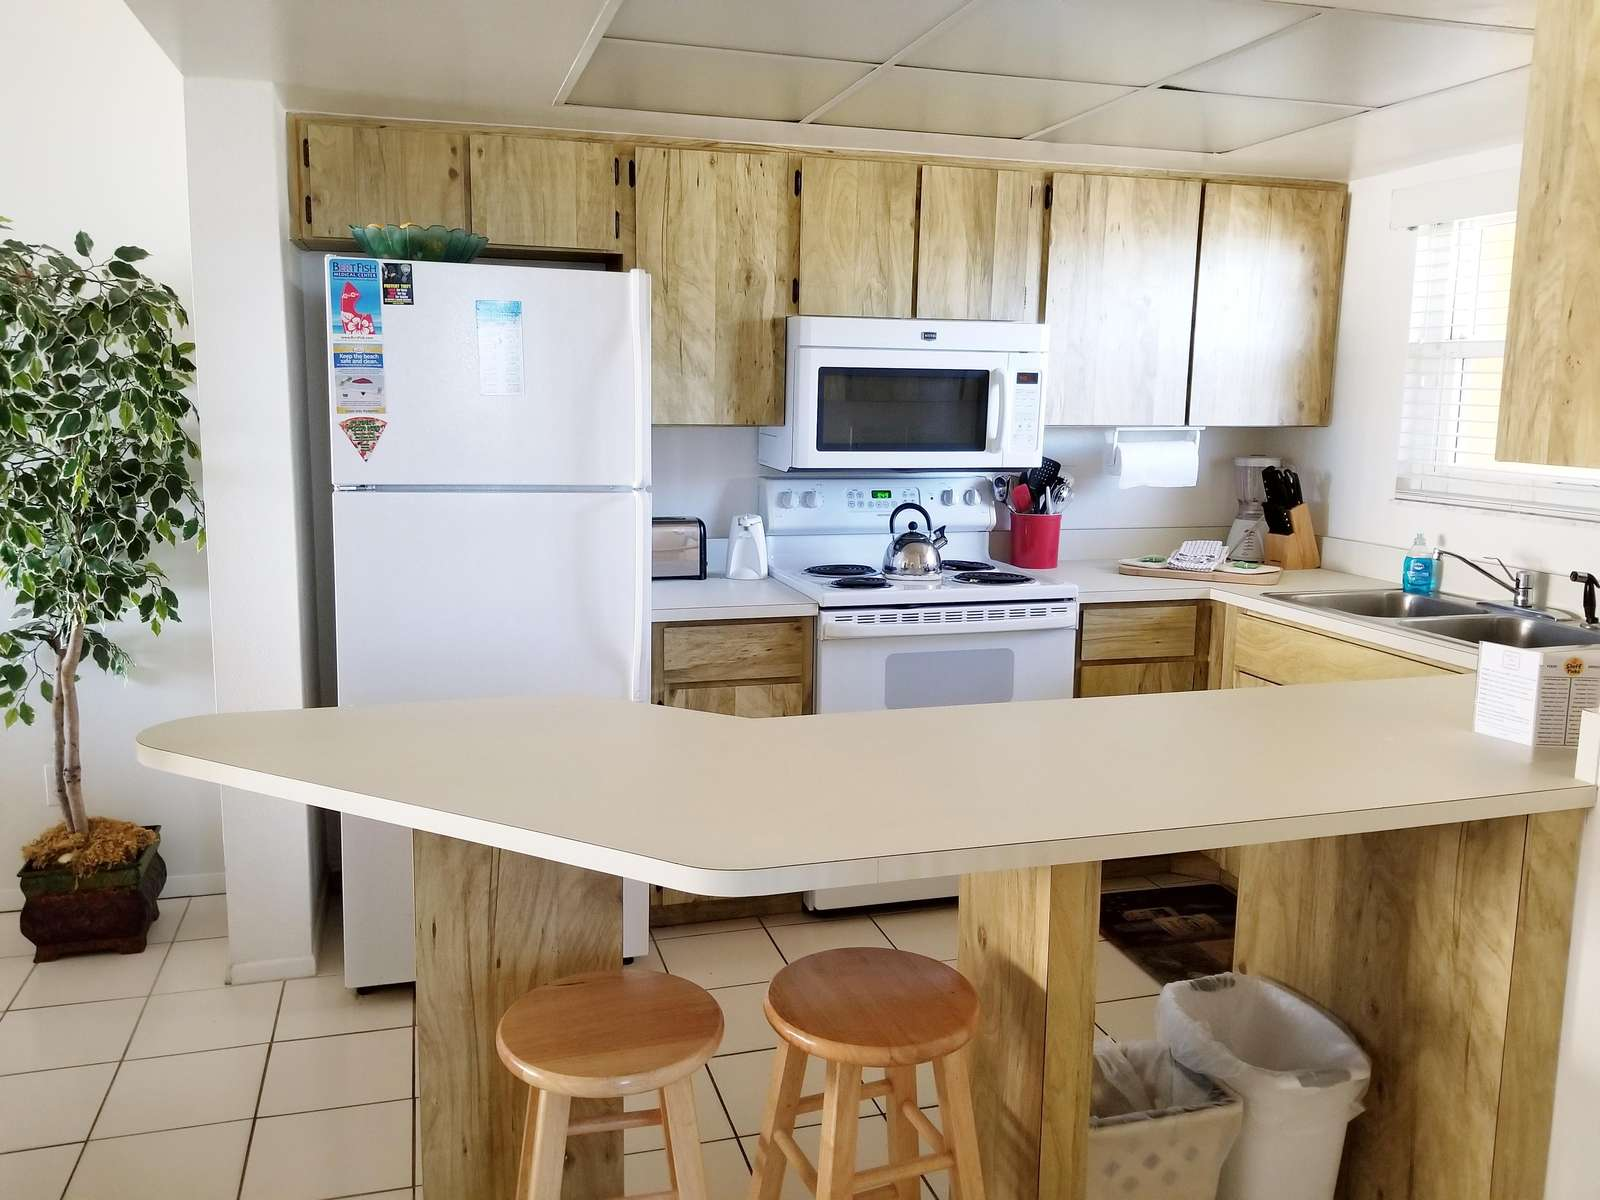 Sideview of kitchen